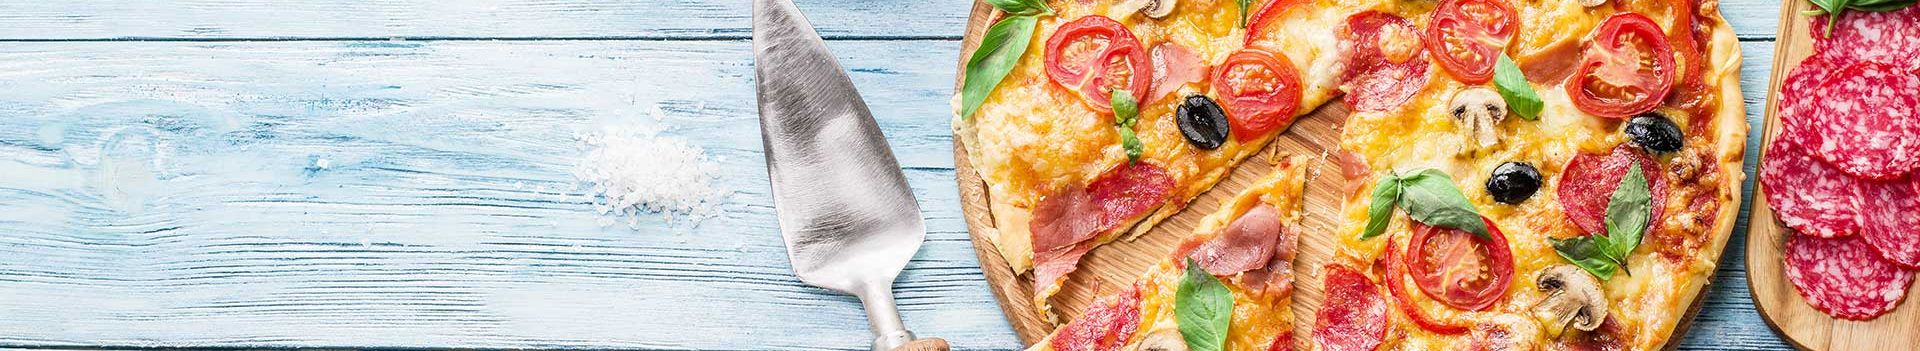 Evershine Pizza Lieferservice in Wien